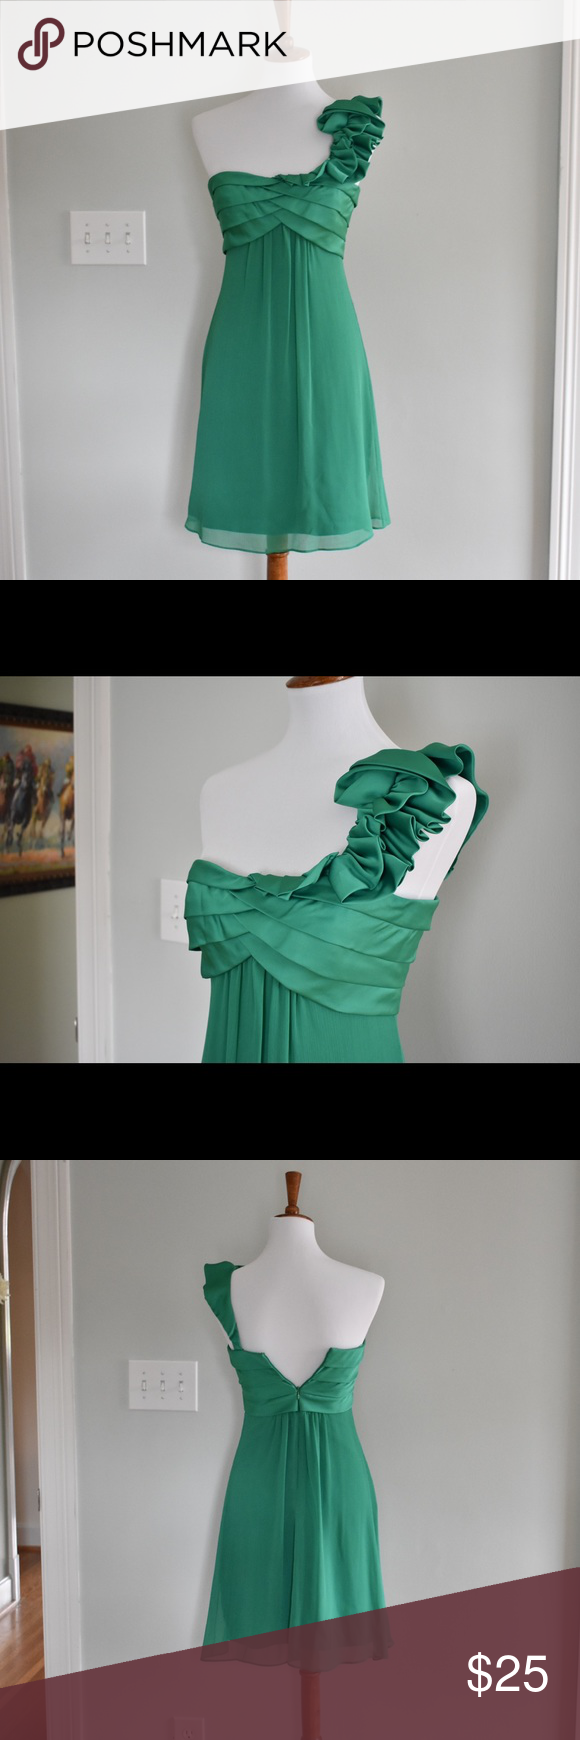 Green dress one shoulder  Max and Cleo Kelly Green Ruffle Dress  Pinterest  Kelly green